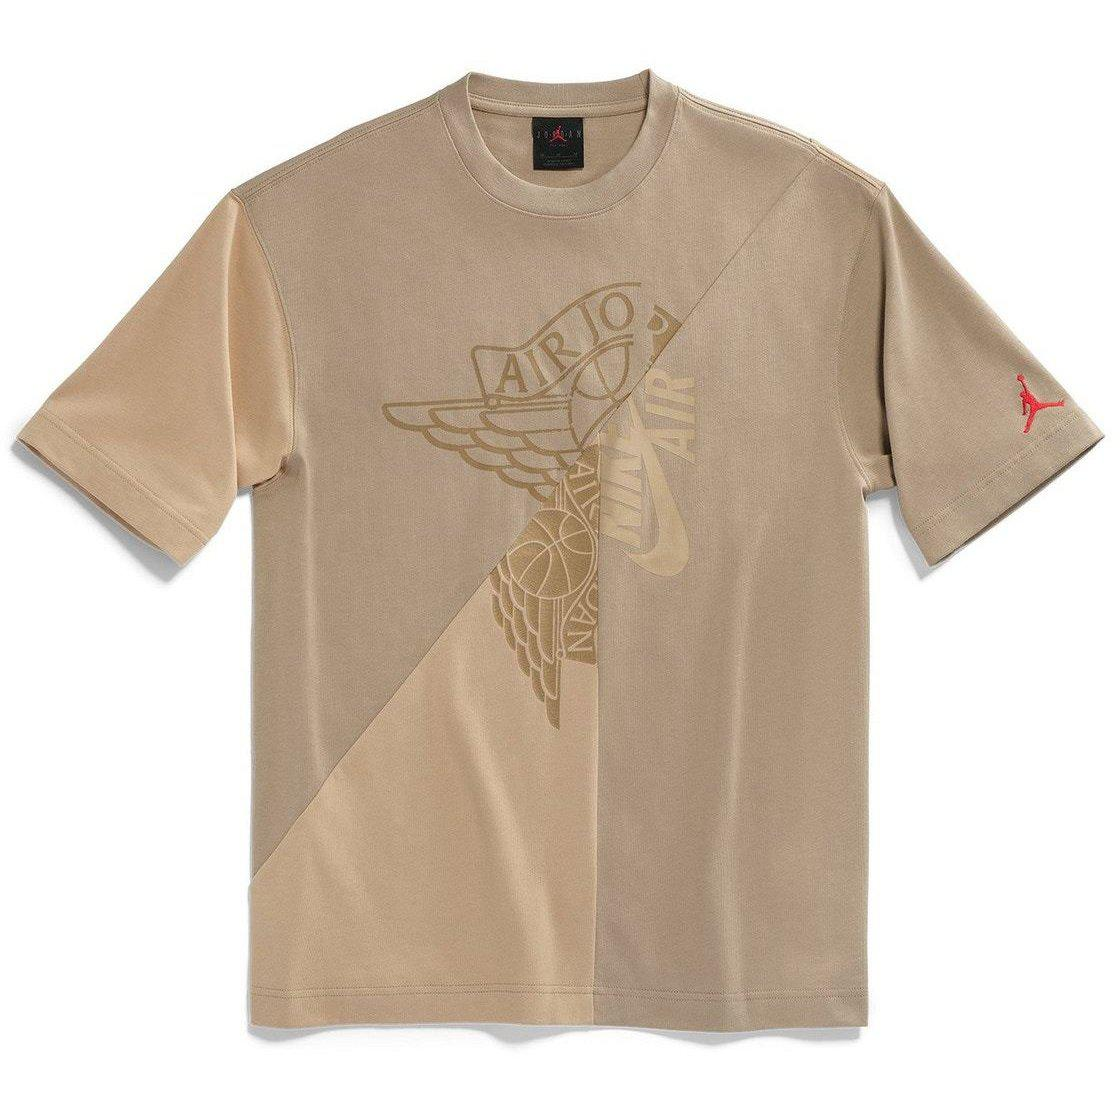 Travis Scott Cactus Jack x Jordan T-Shirt Khaki/Desert | Waves Never Die | Travis Scott | T-Shirt